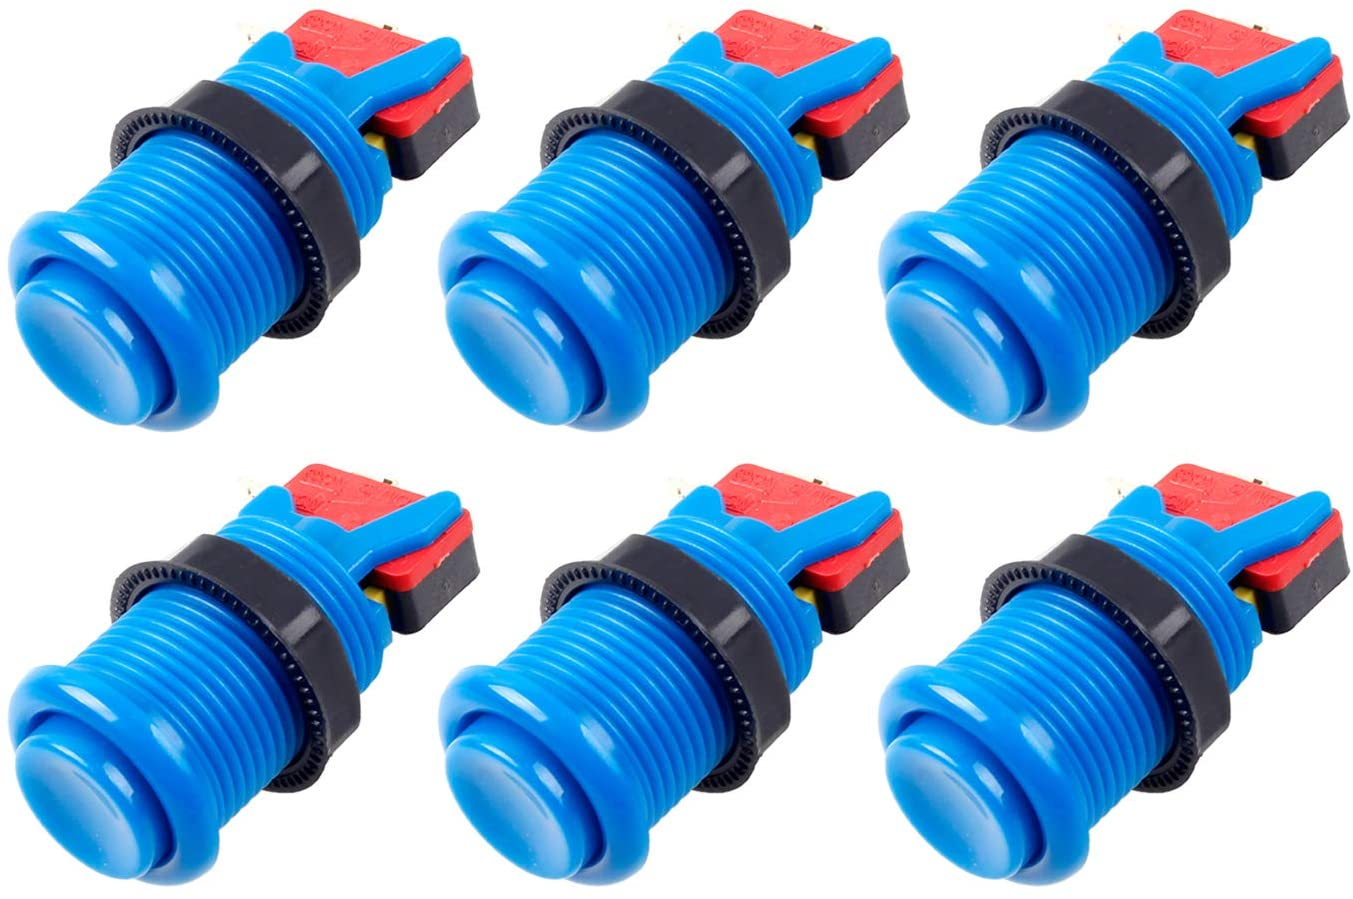 6x Arcade Buttons with Concave Plunger - Blue